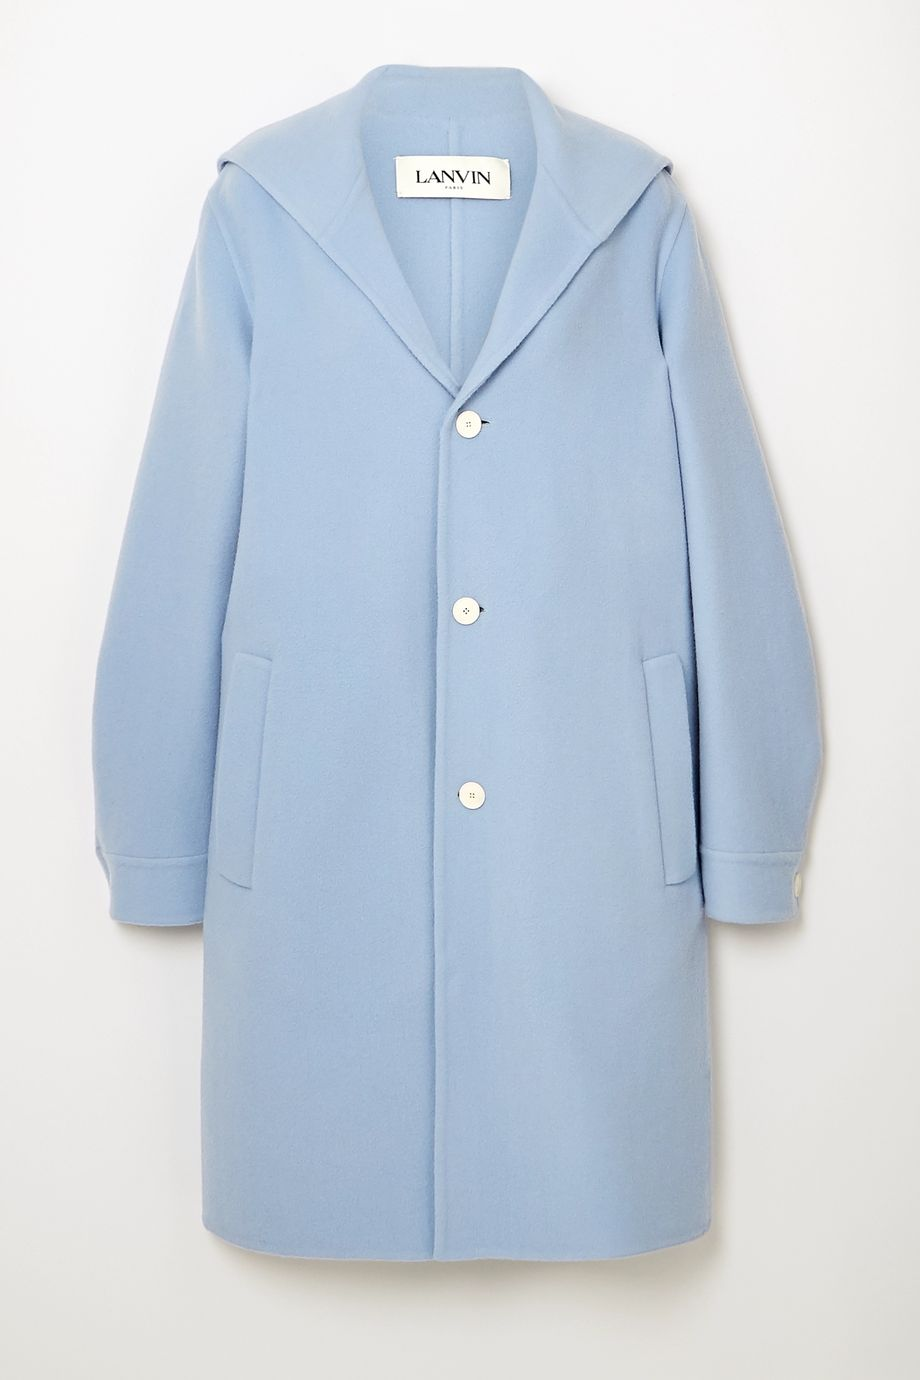 Lanvin Wool and cashmere-blend coat